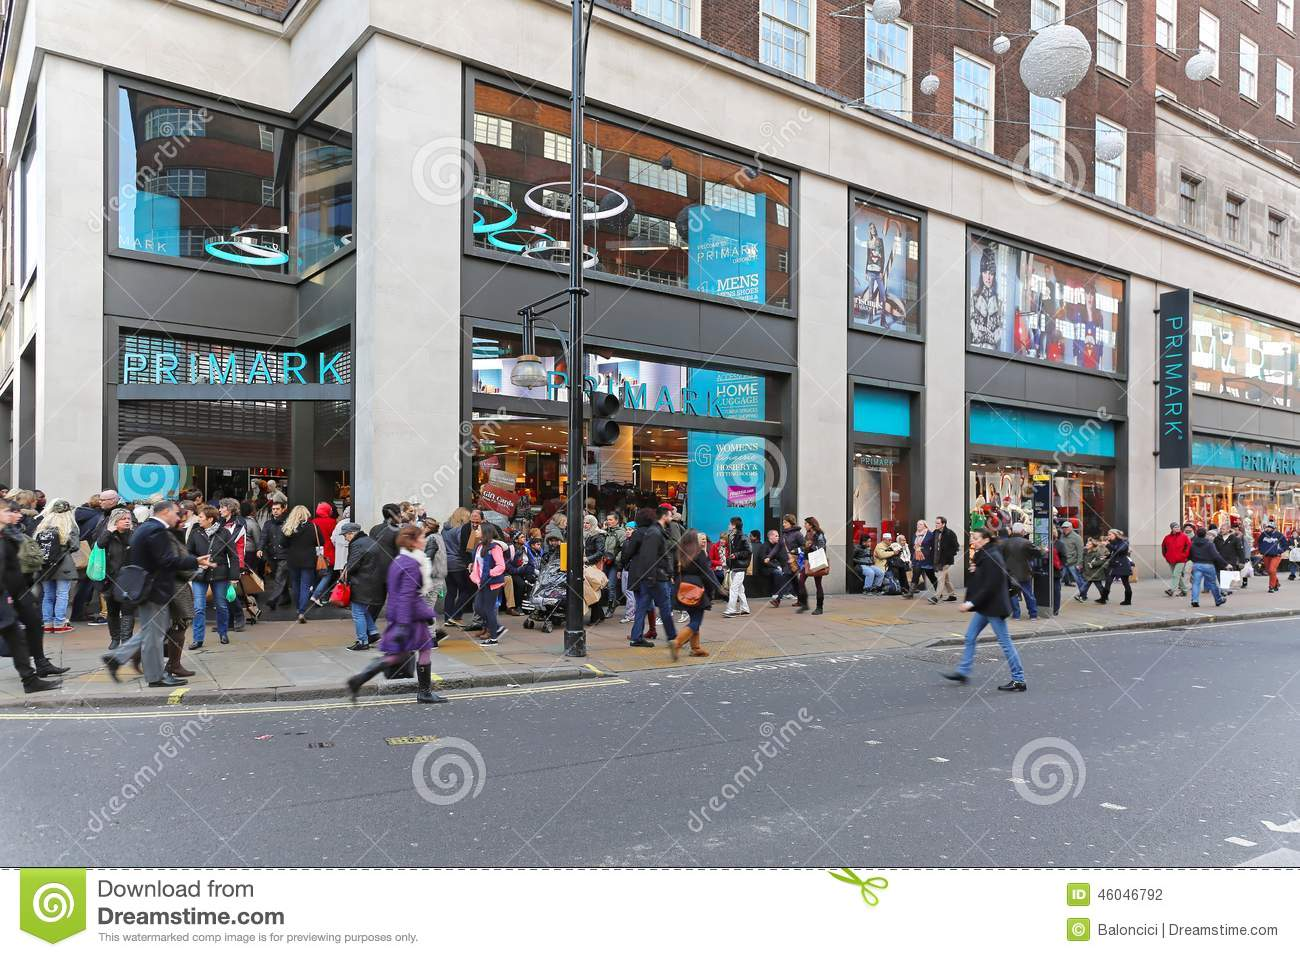 Clothing stores in united kingdom